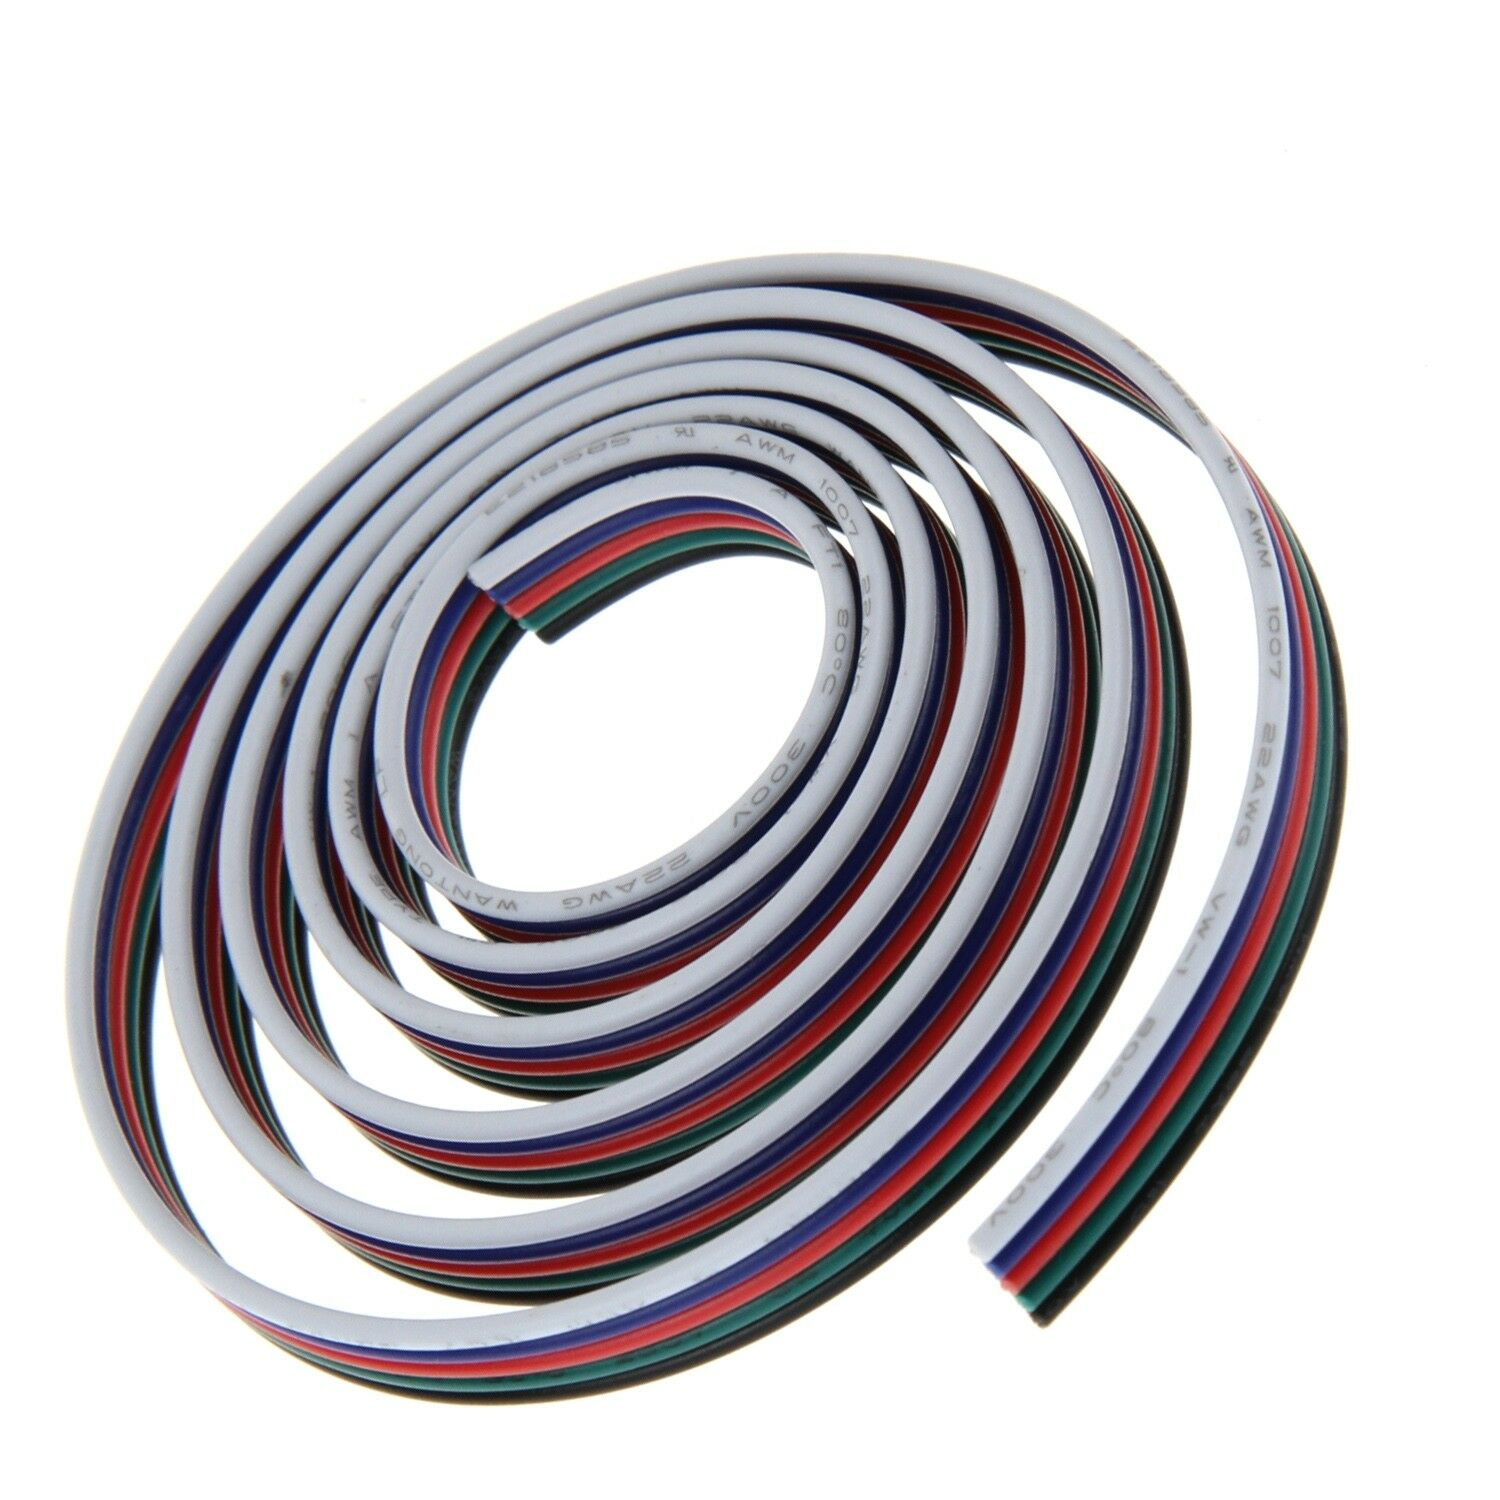 5x 0,5 mm² 20 AWG RGB-W digitai 5-conductores, alargador, METERWARE